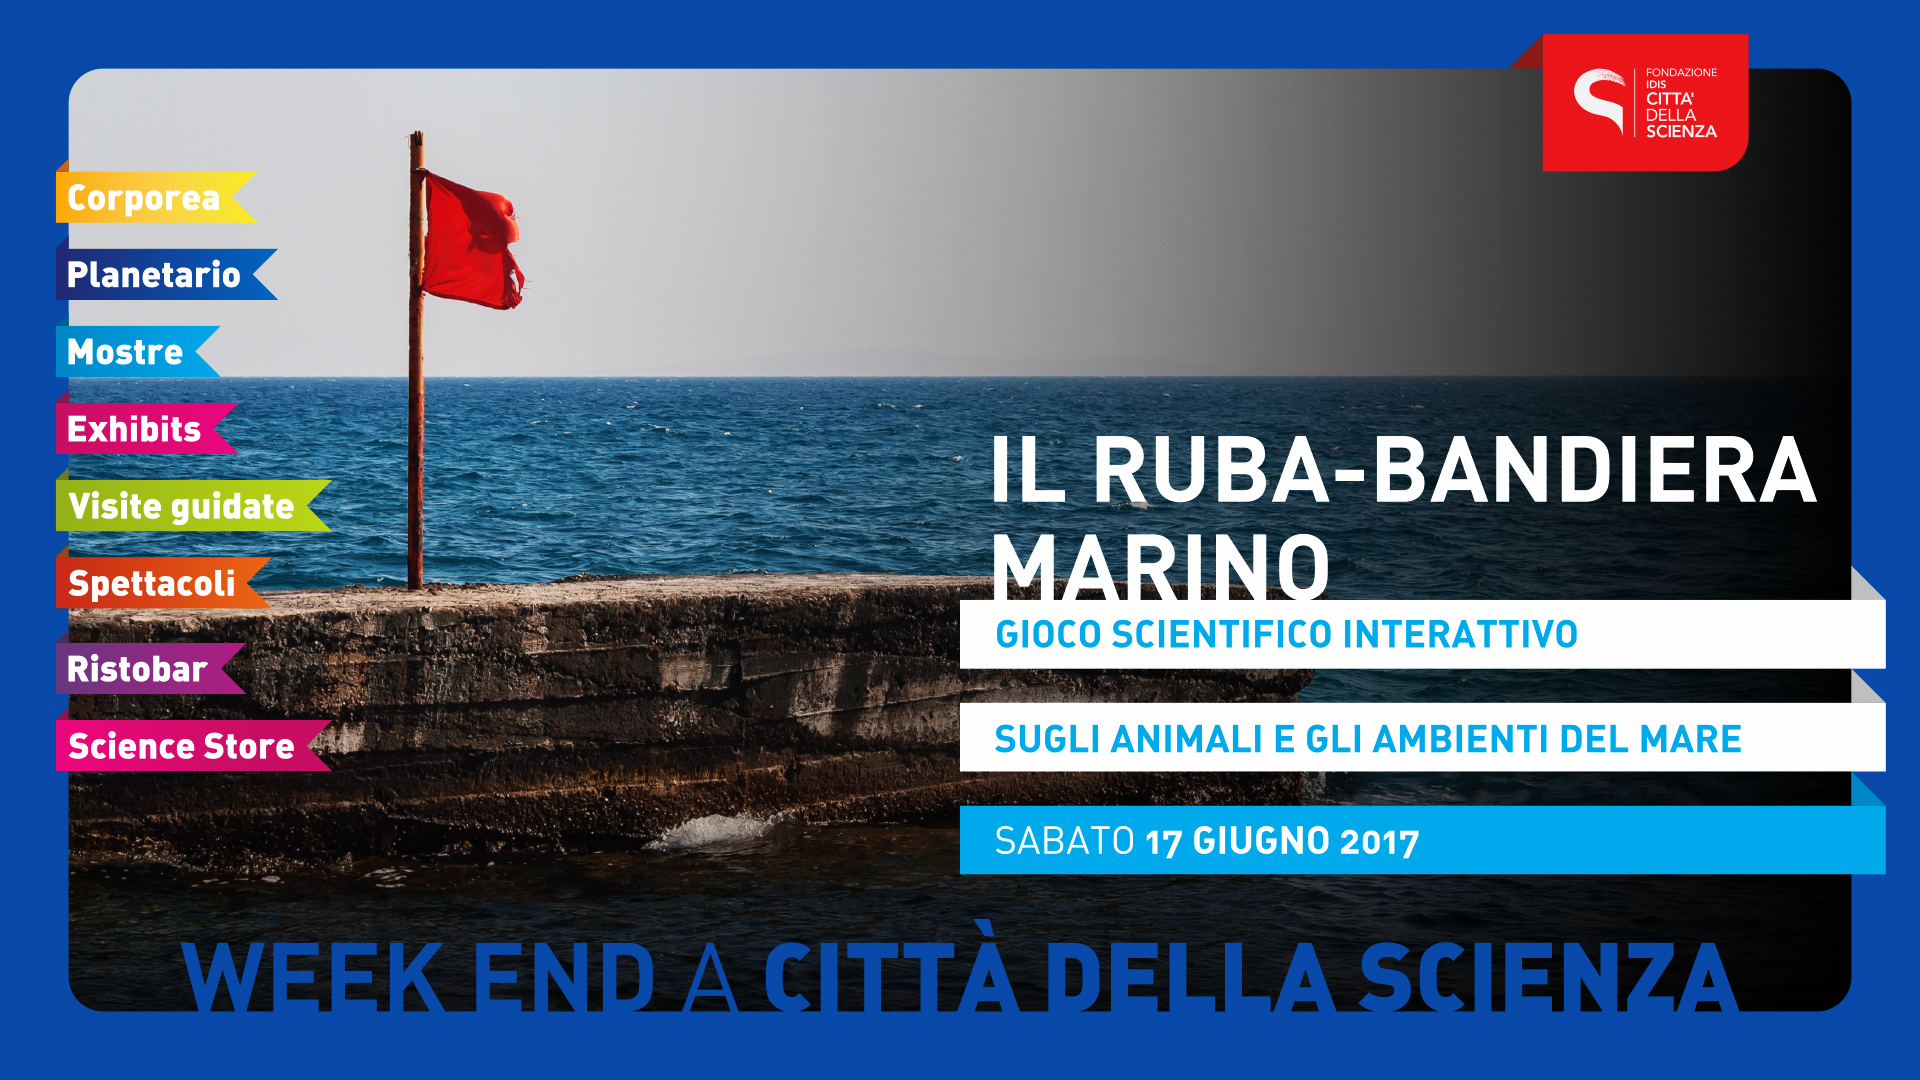 ADV_WEEK_END_(giugno_2017)_009.cdr